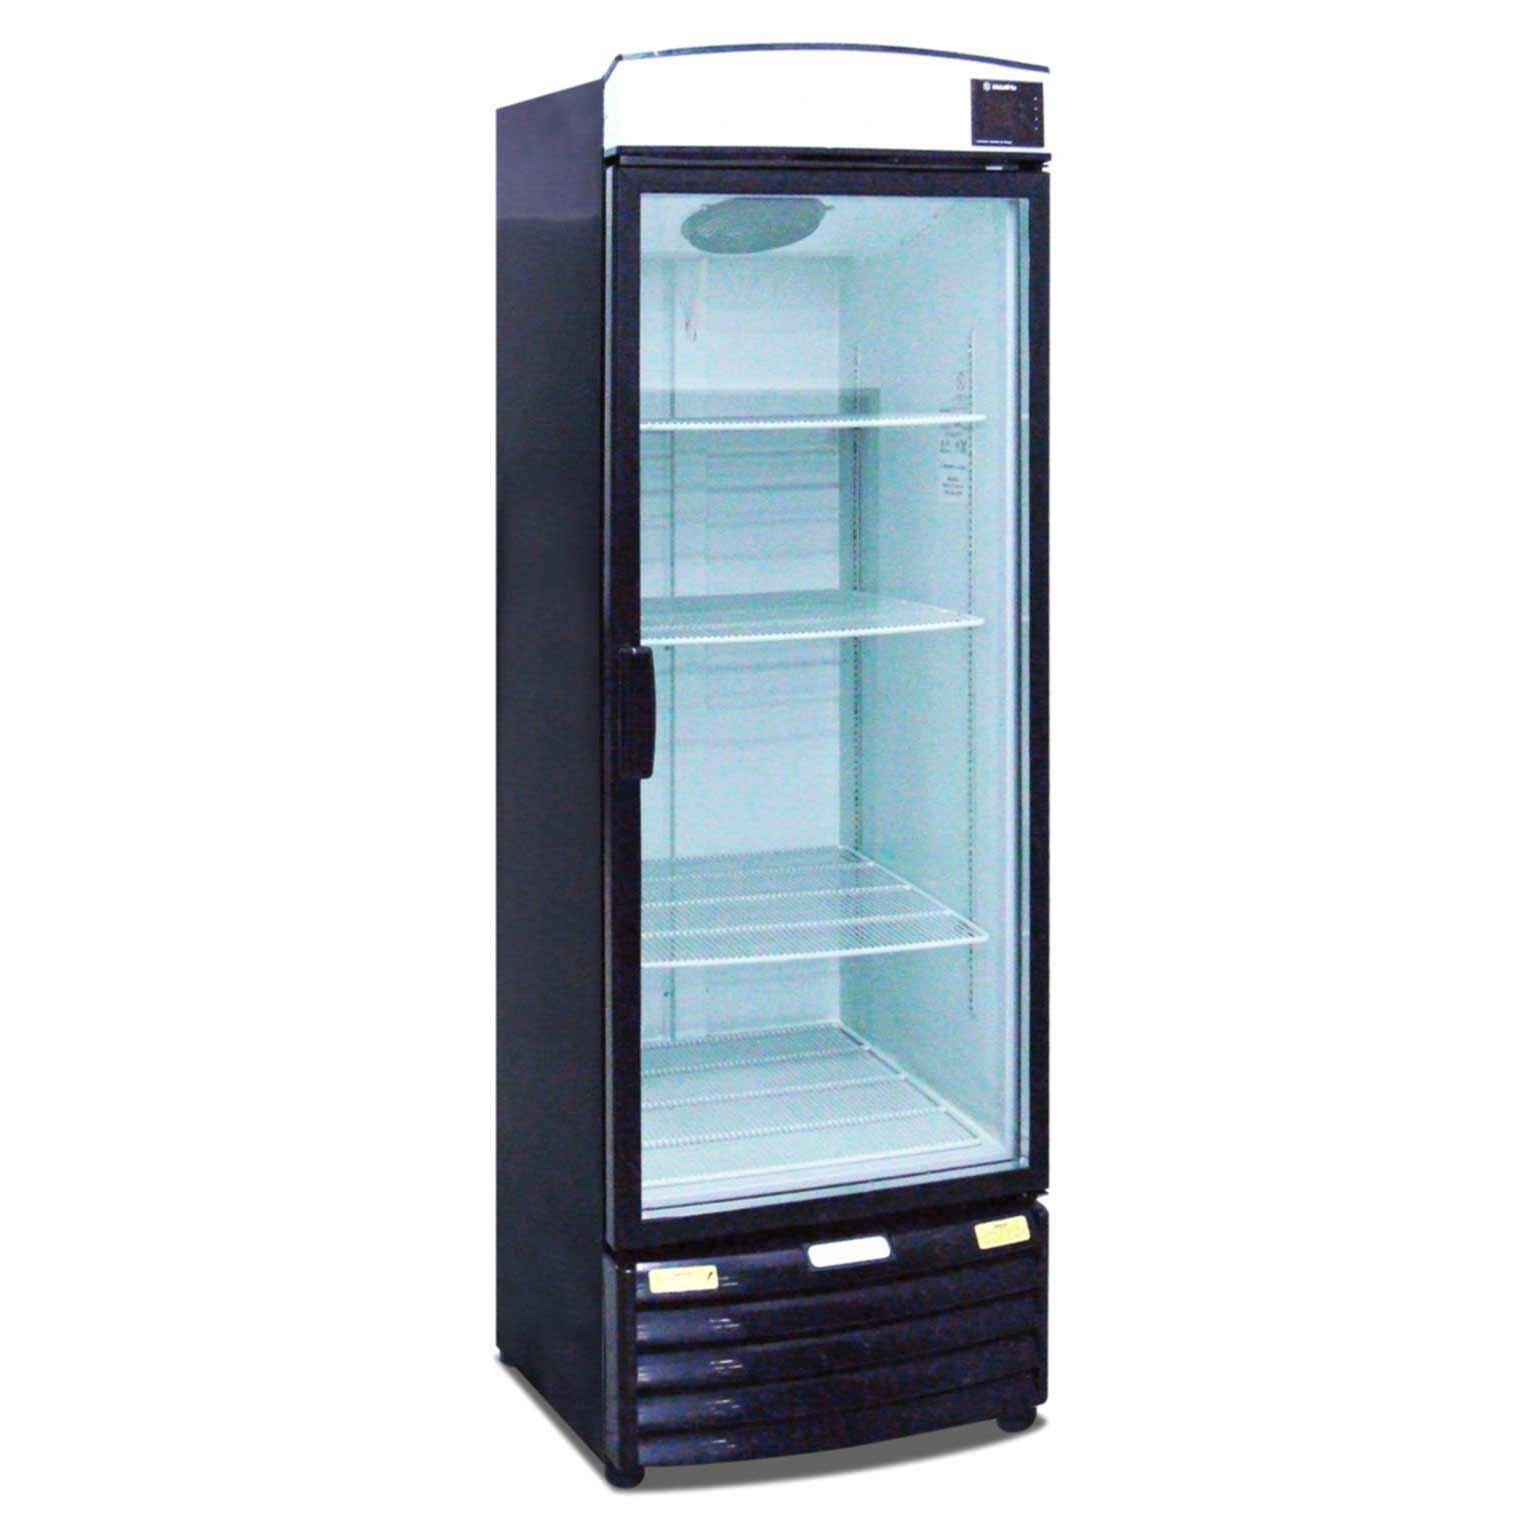 Prima glass swing door tall beverage refrigerator